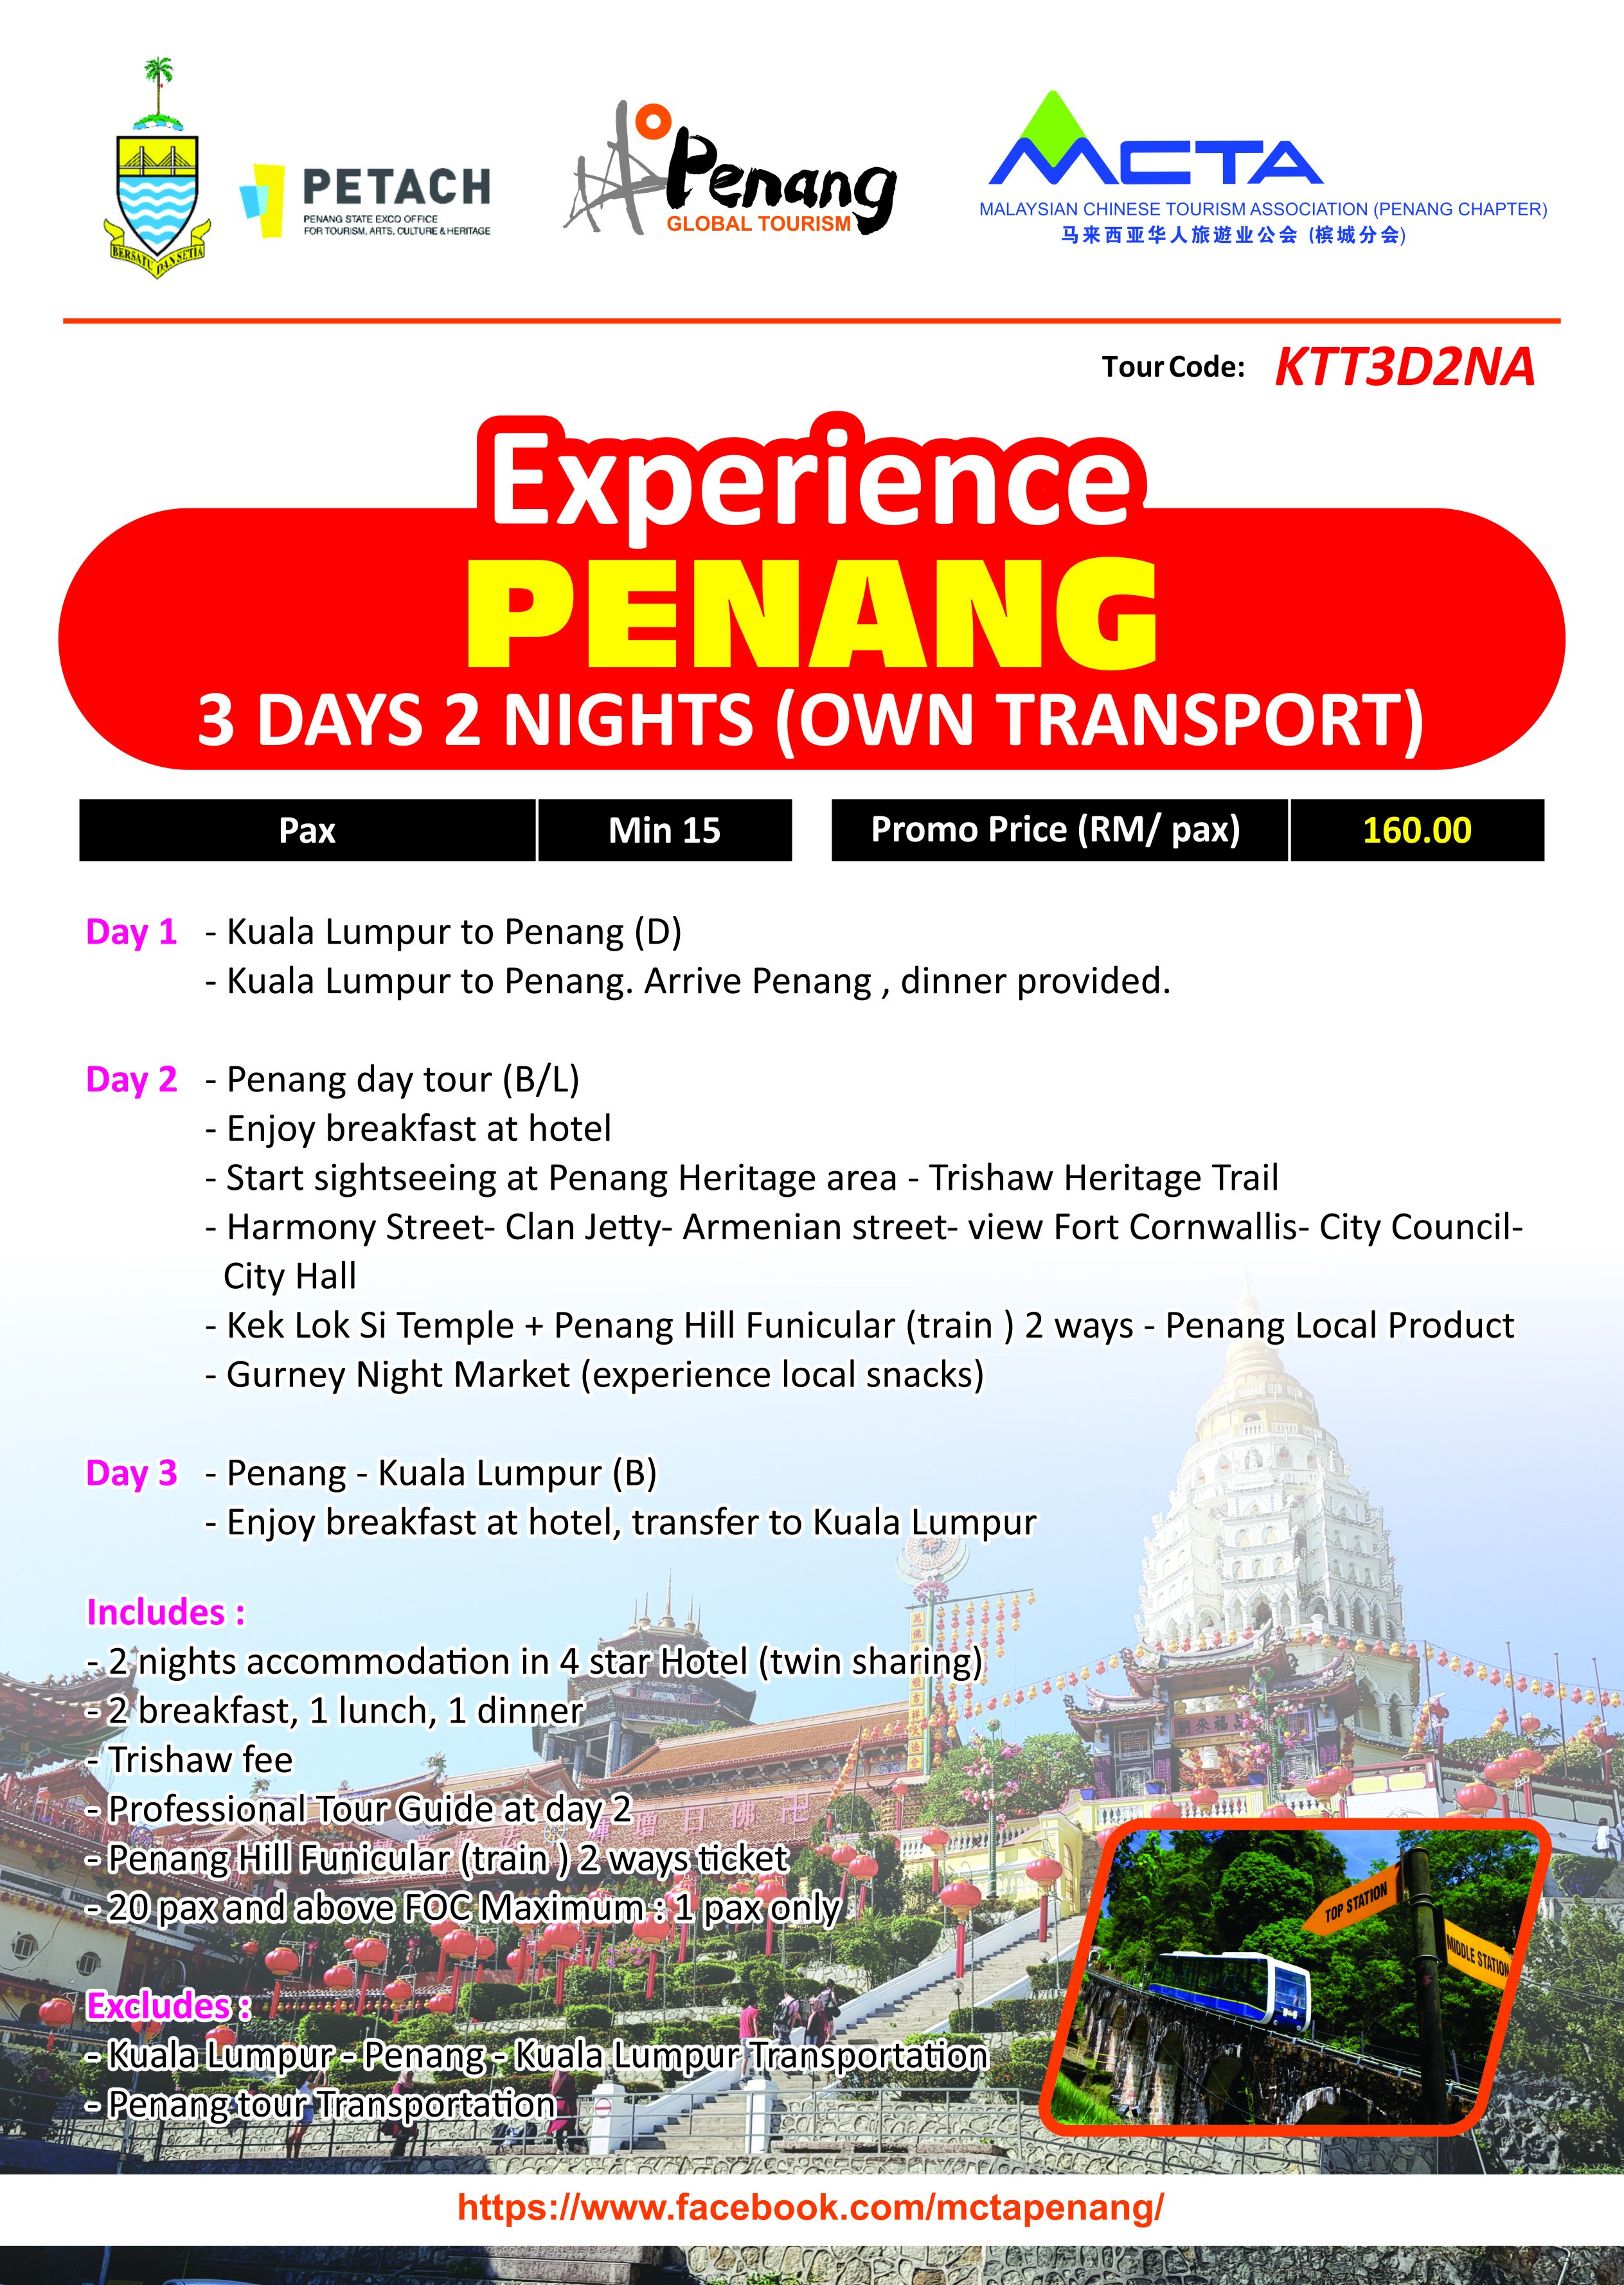 Experience Penang - 3 Days 2 Nights (Own Transport)